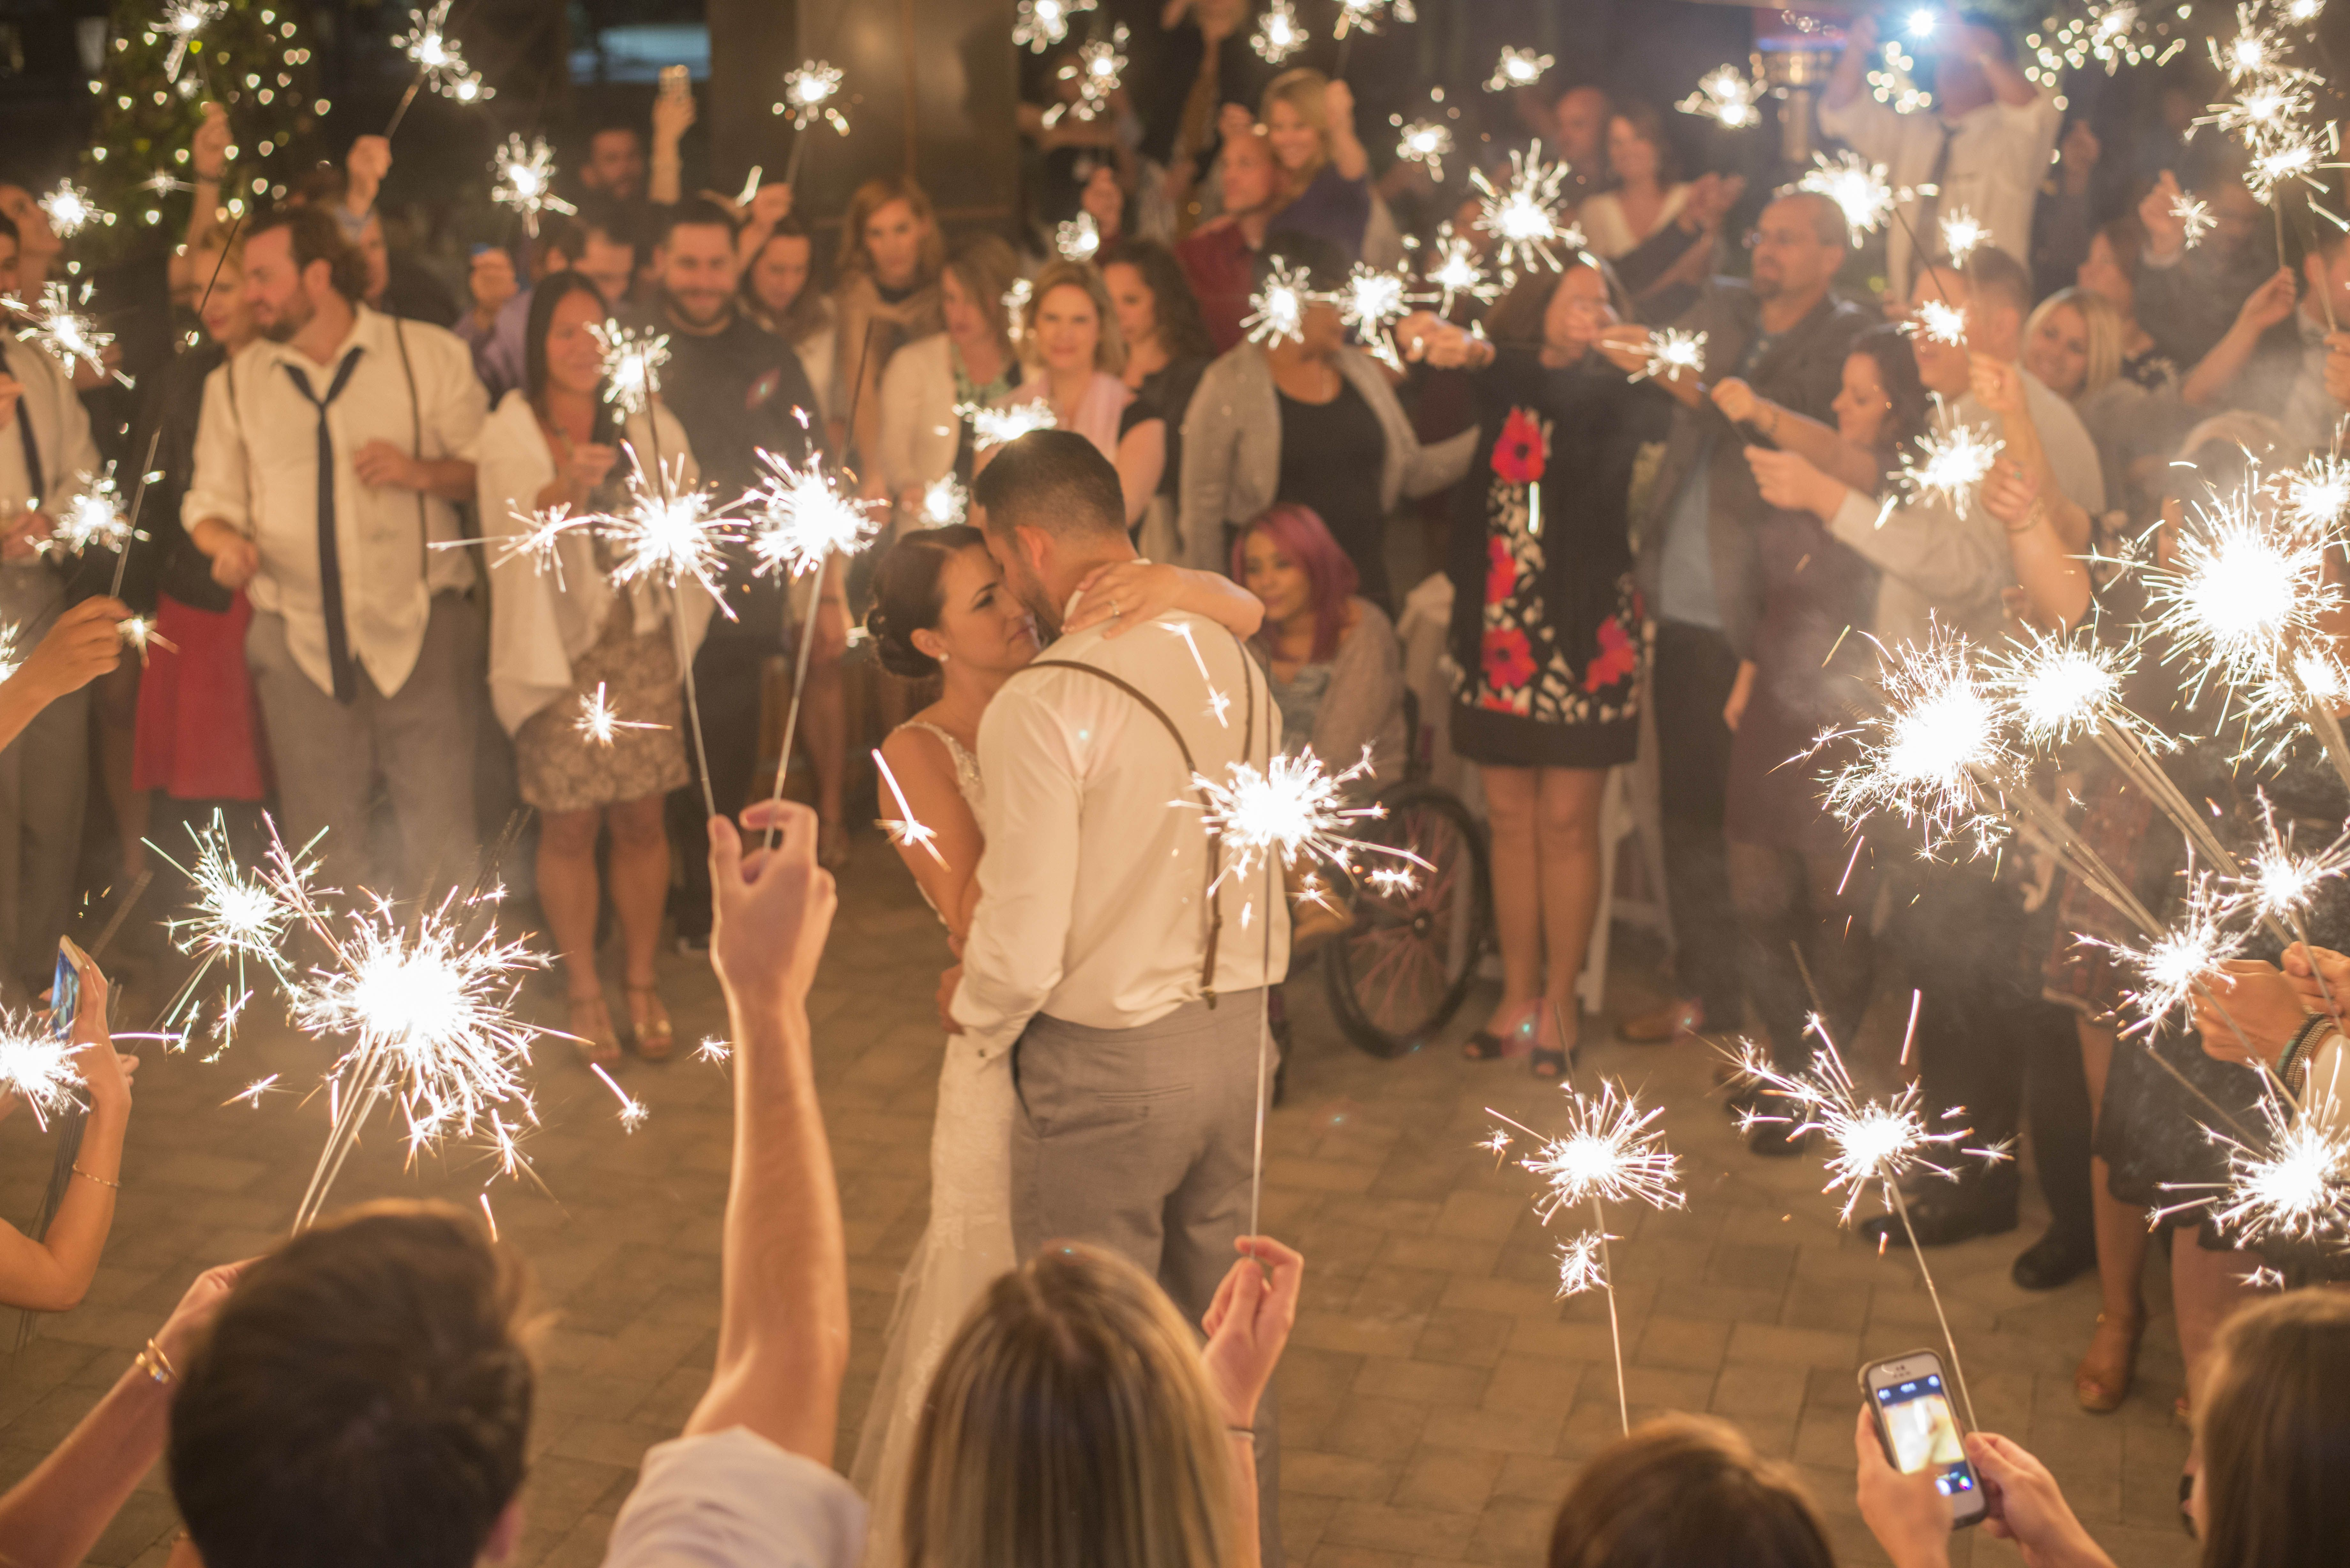 Sparkler First Dance At Casual Backyard Wedding Wedding Sparklers Backyard Wedding Magical Wedding